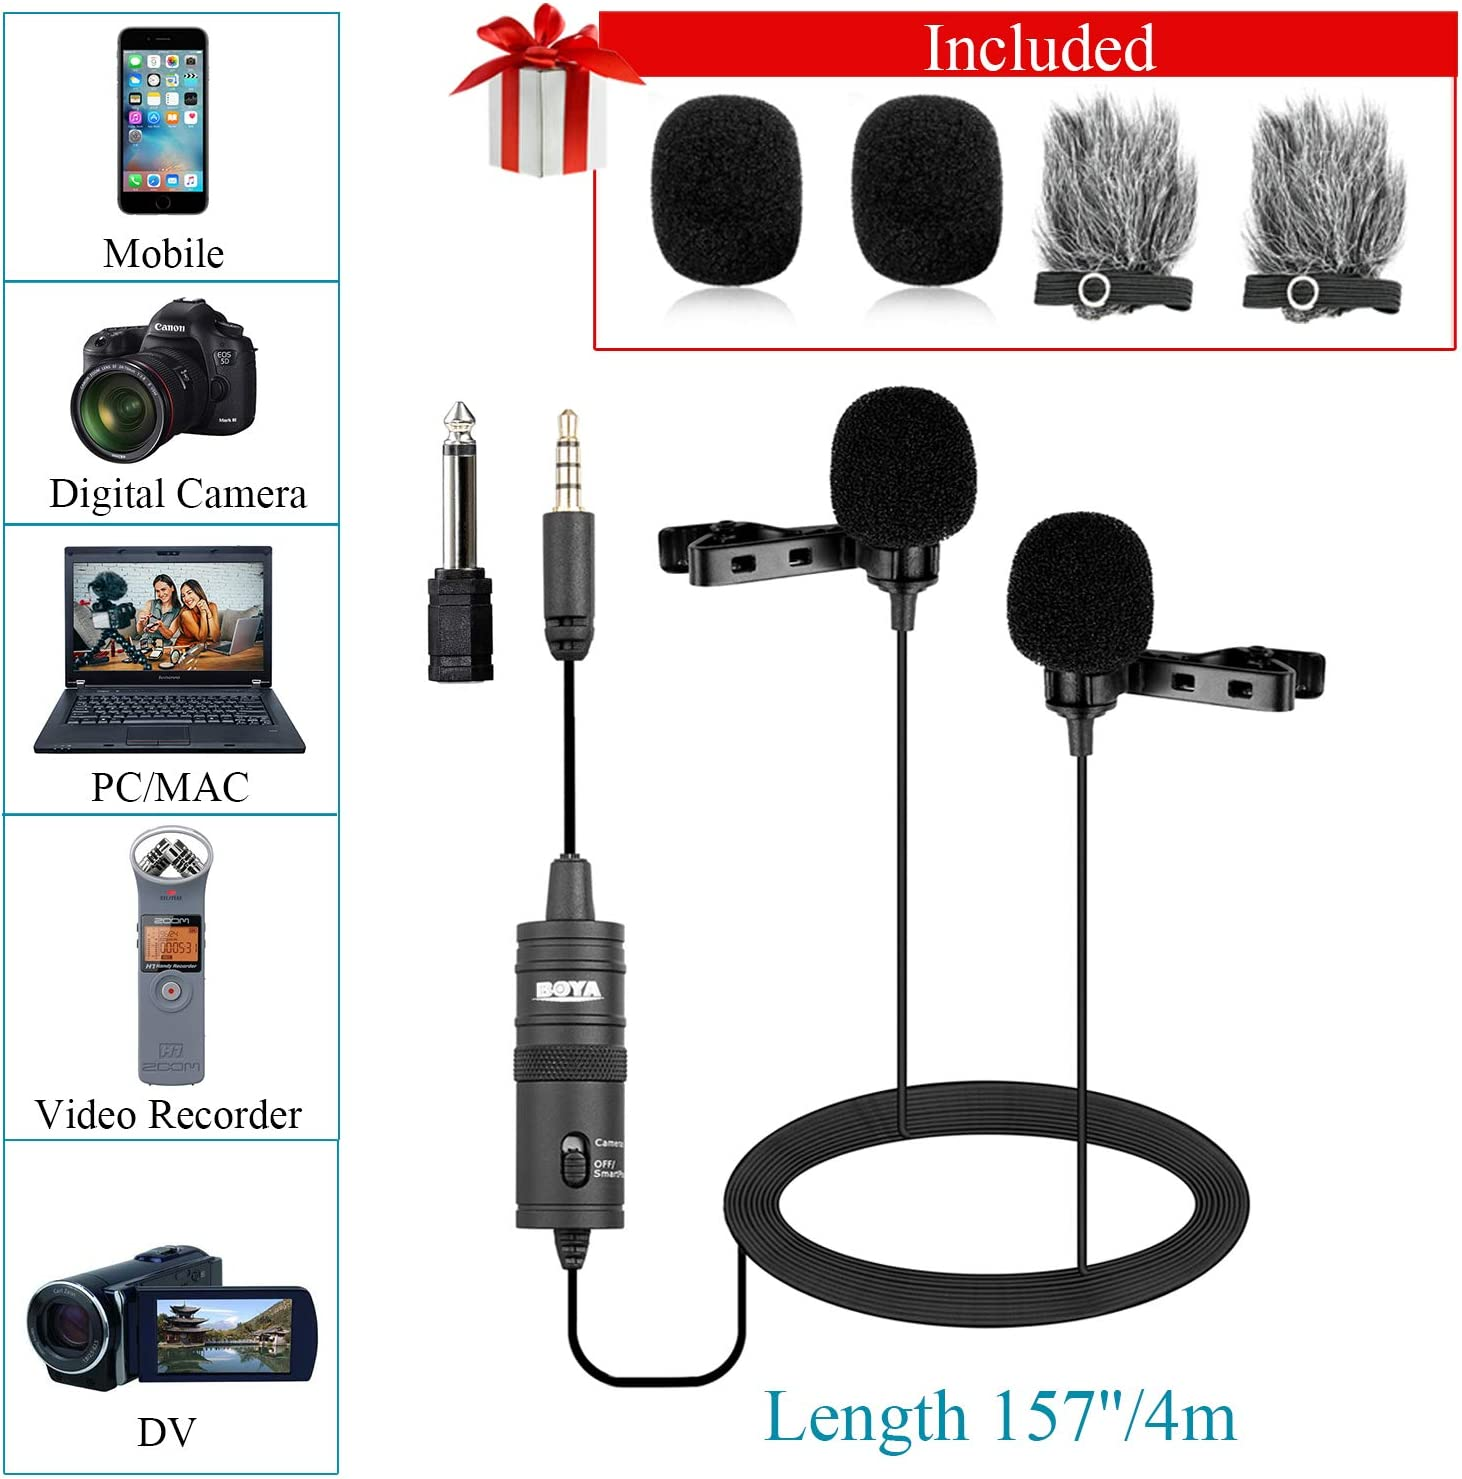 236 Inch//6m USB-C Lavalier Microphone for Android Smartphones BOYA Clip-on Mic for Type-C Smartphones Pad Tablet Huawei Mate 10 Samsung Galaxy Note 9 8 Plus Xiaomi LG YouTube Video